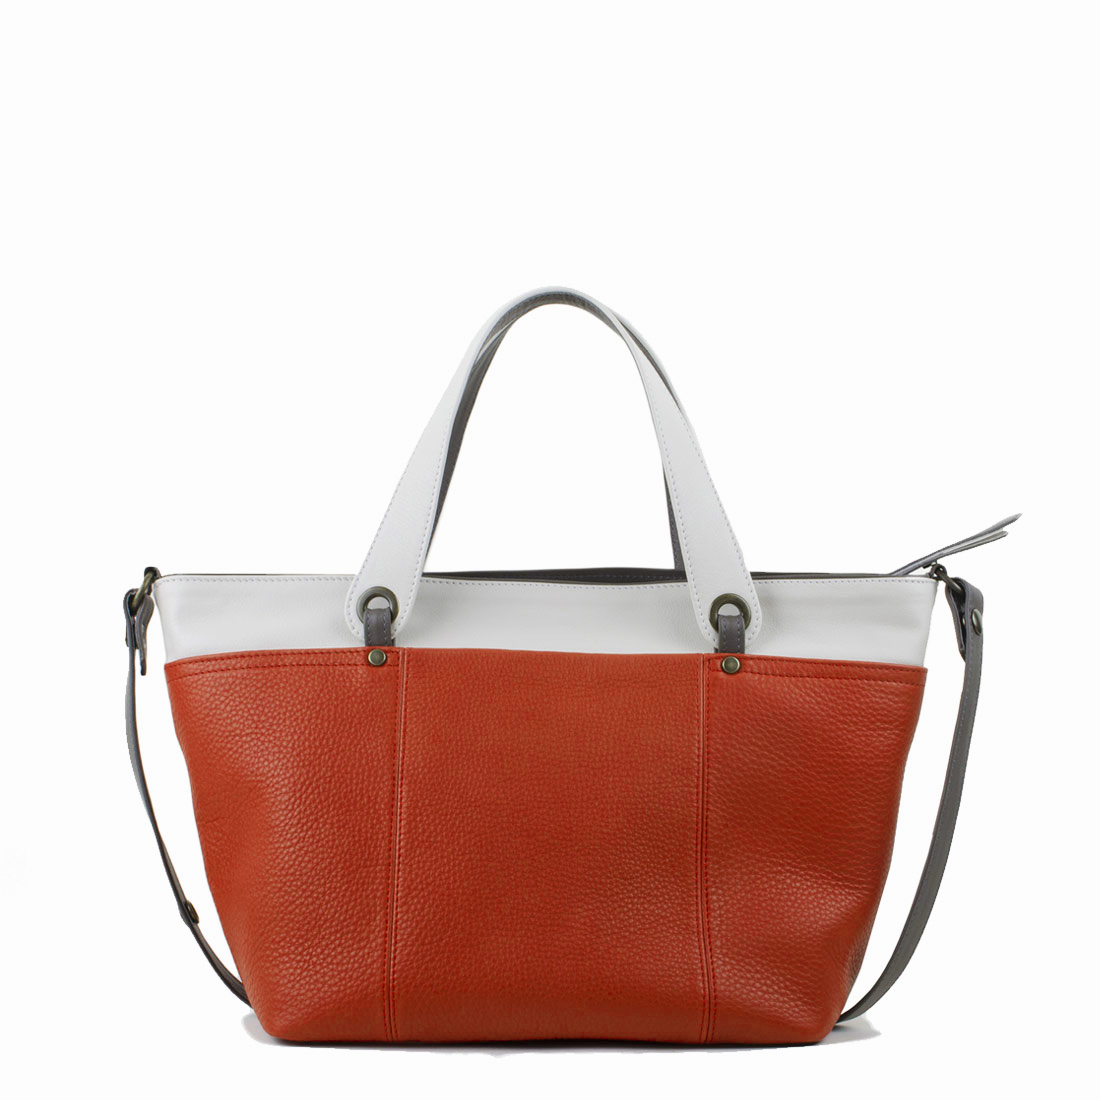 Lucy Orange Polvere Leather Tote Bag